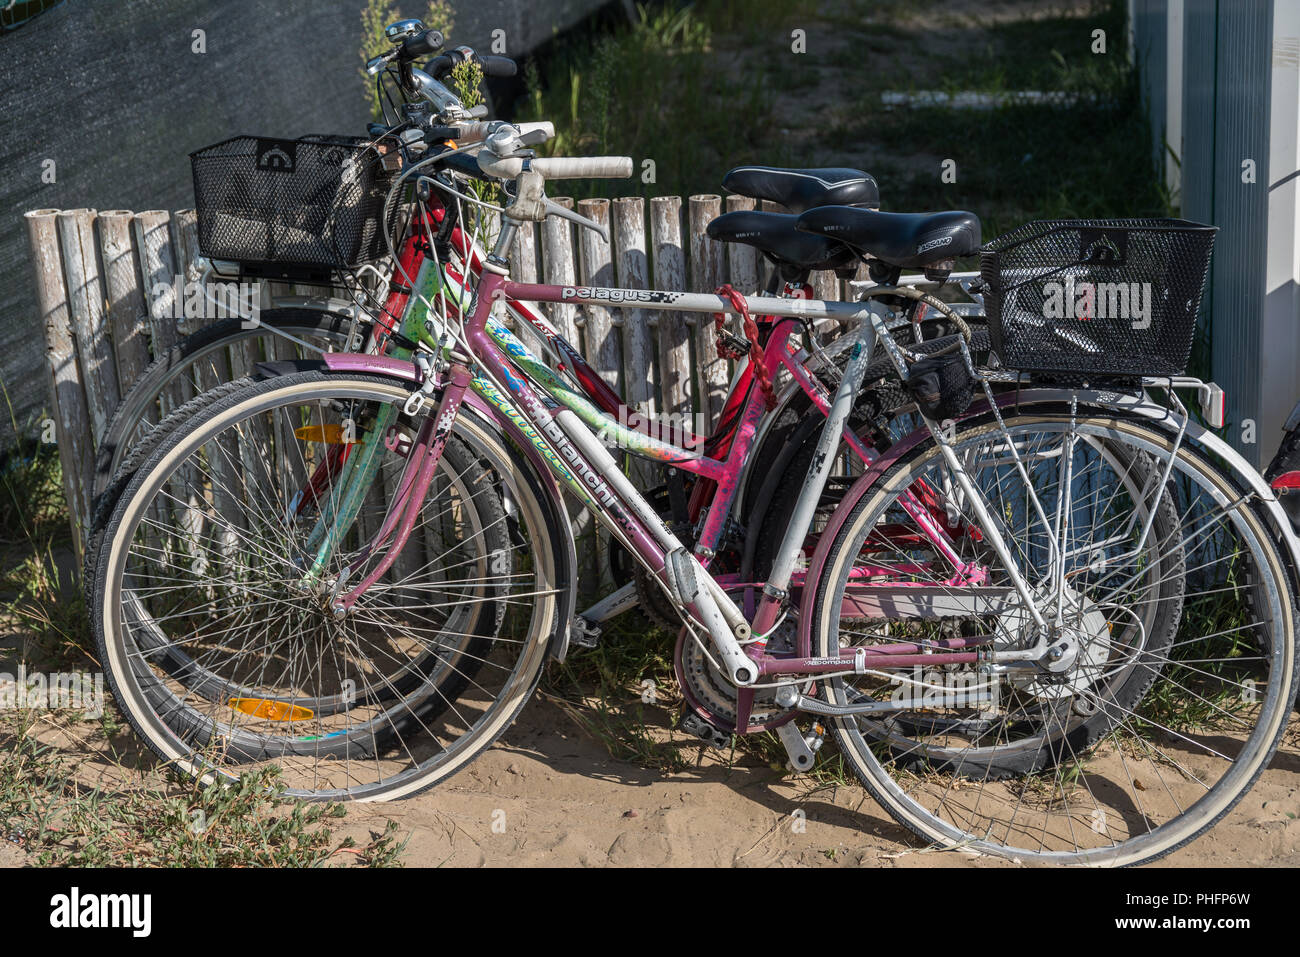 Bicycles theft proof - close-up - Stock Image